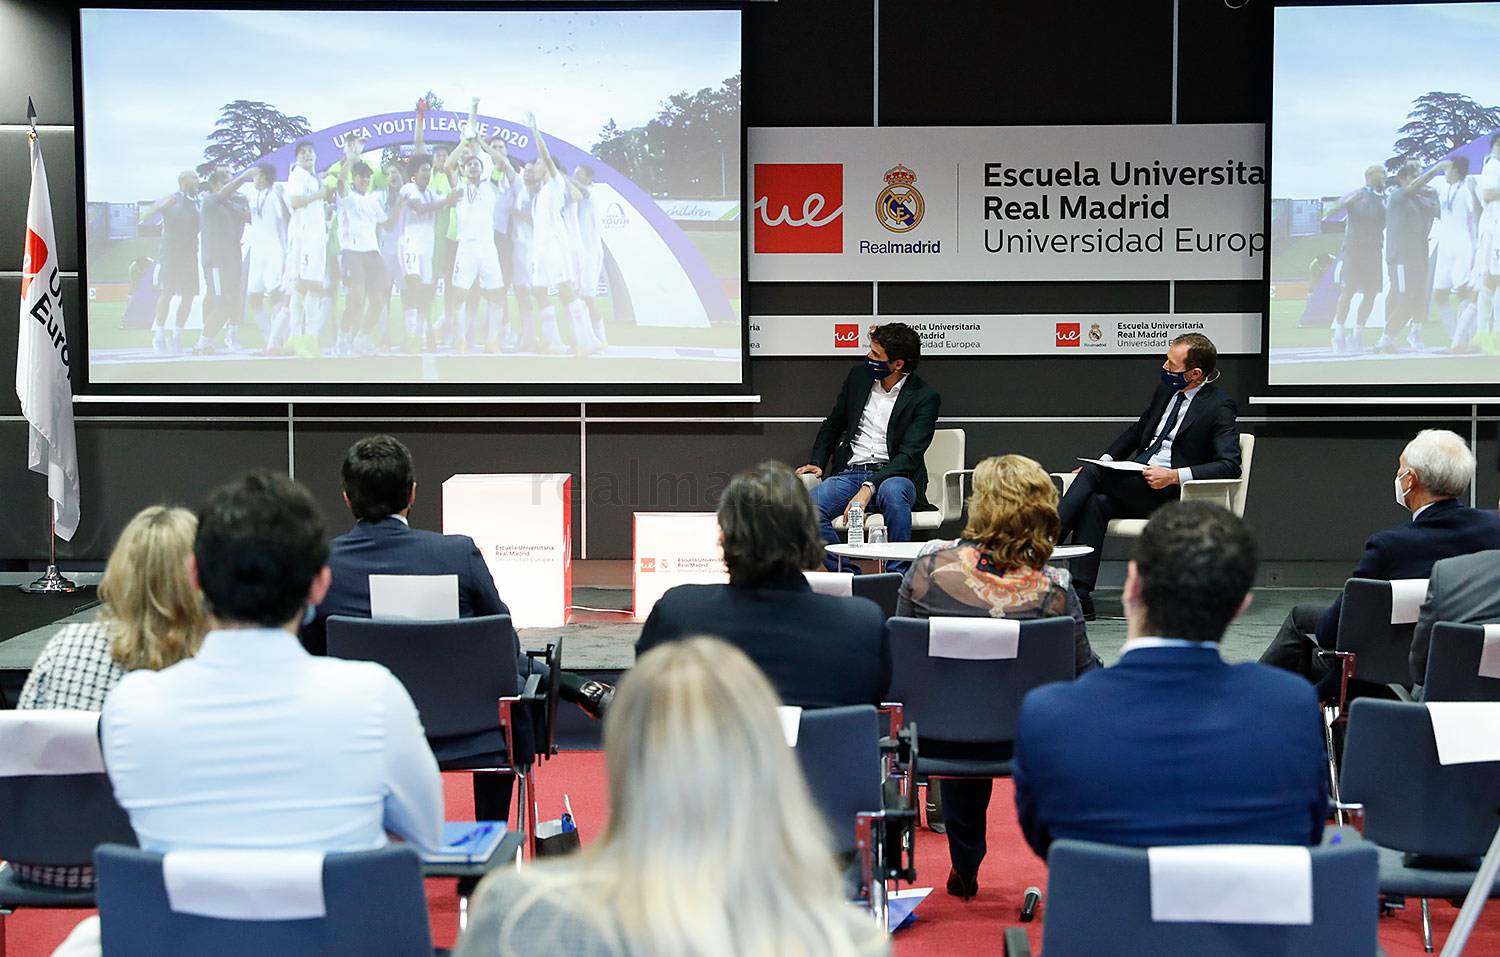 Real Madrid - Inaugurado el curso 2020-21 de la Escuela Universitaria Real Madrid Universidad Europea - 17-11-2020